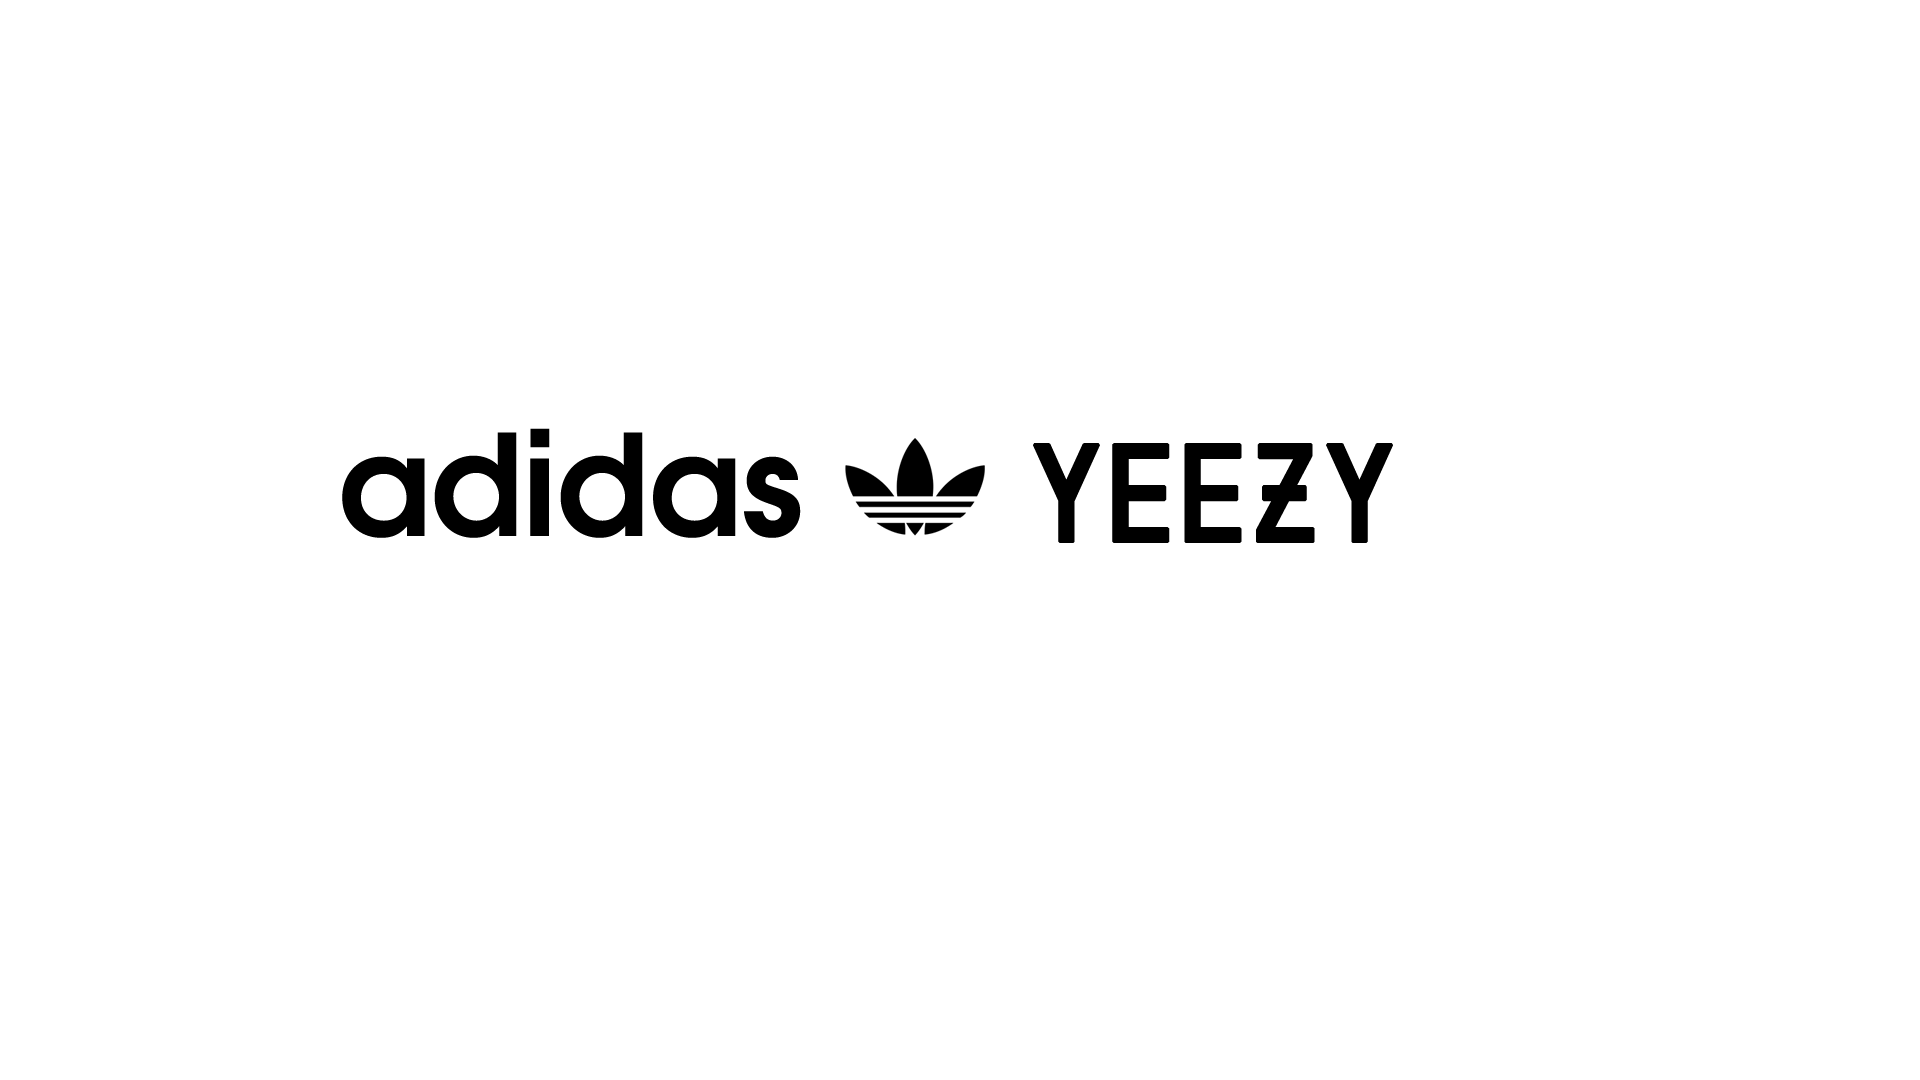 Yeezy Logo - For any editors out there, I couldn't find the adidas yeezy logo so ...